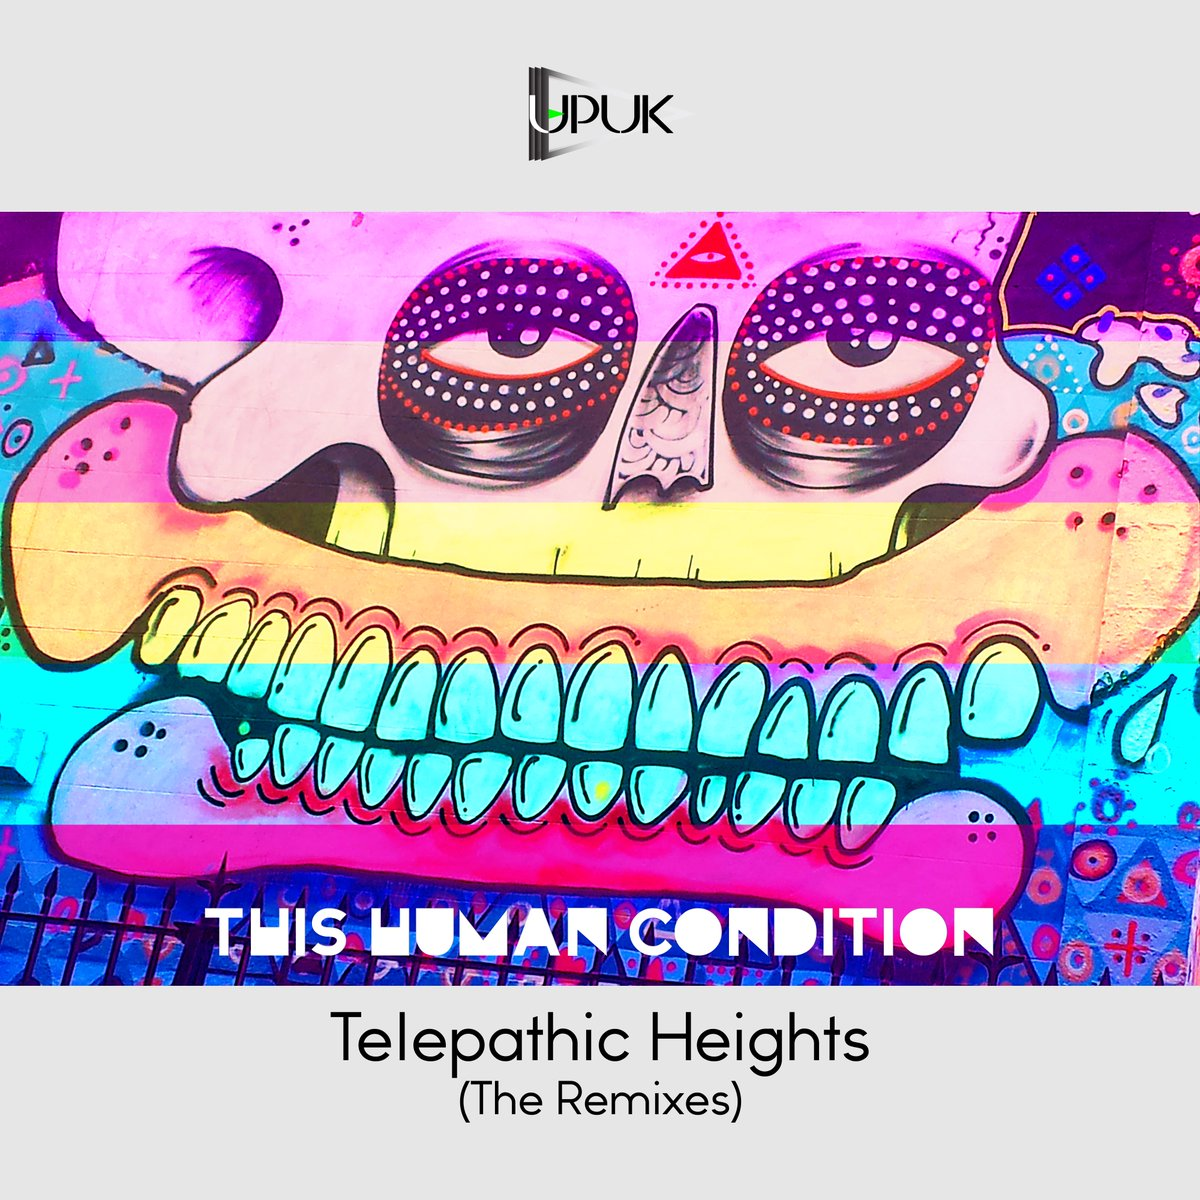 TuneIn: https://t.co/qUK4FzVrCs (@QuestLondonUK) To hear new Remixes of 'Telepathic Heights' from @doppelstern  @QuintSEnce  @sonicconstruct  @Audiofetish_DE   Released via @UpukR 4th June (https://t.co/Ahh3nU649x) #questlondonradio #QuestFamily  #House #techno #techhouse https://t.co/nBAlFF1nsb